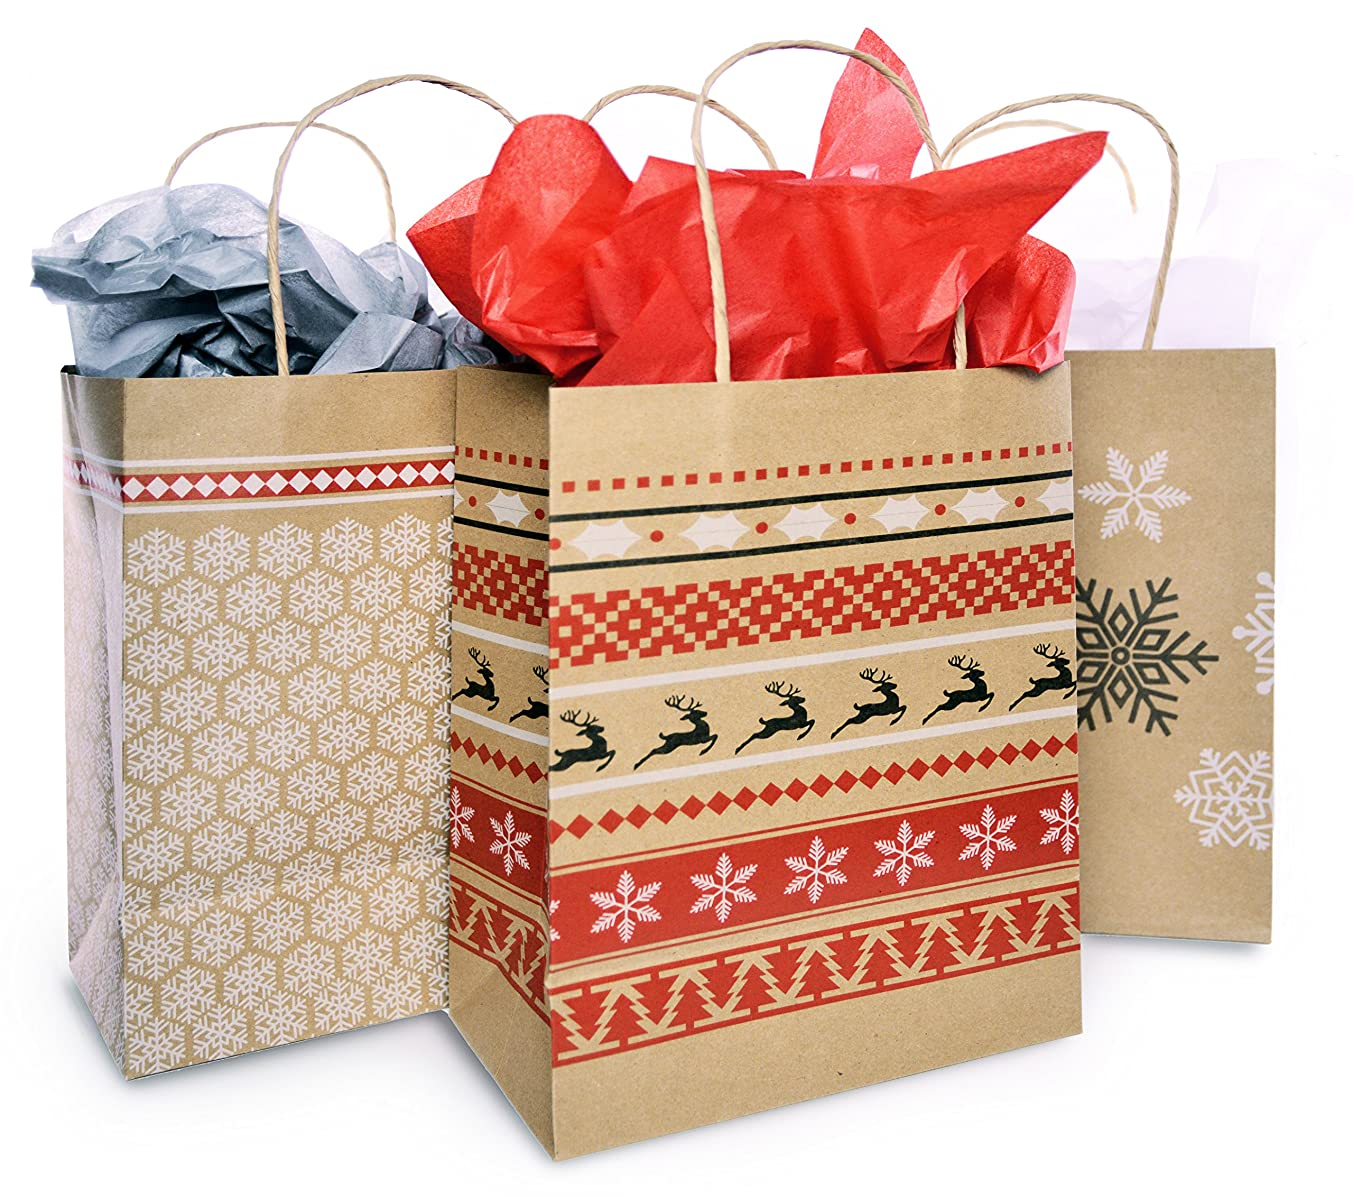 Christmas Gift Bag Set with Tissue Paper Included | Red & White Nordic Print Gift Bag | Paper Kraft Bags In 3 Assorted Holiday Designs With Matching Tissue Paper | Xmas Fair Isle Bulk Packaging (12)